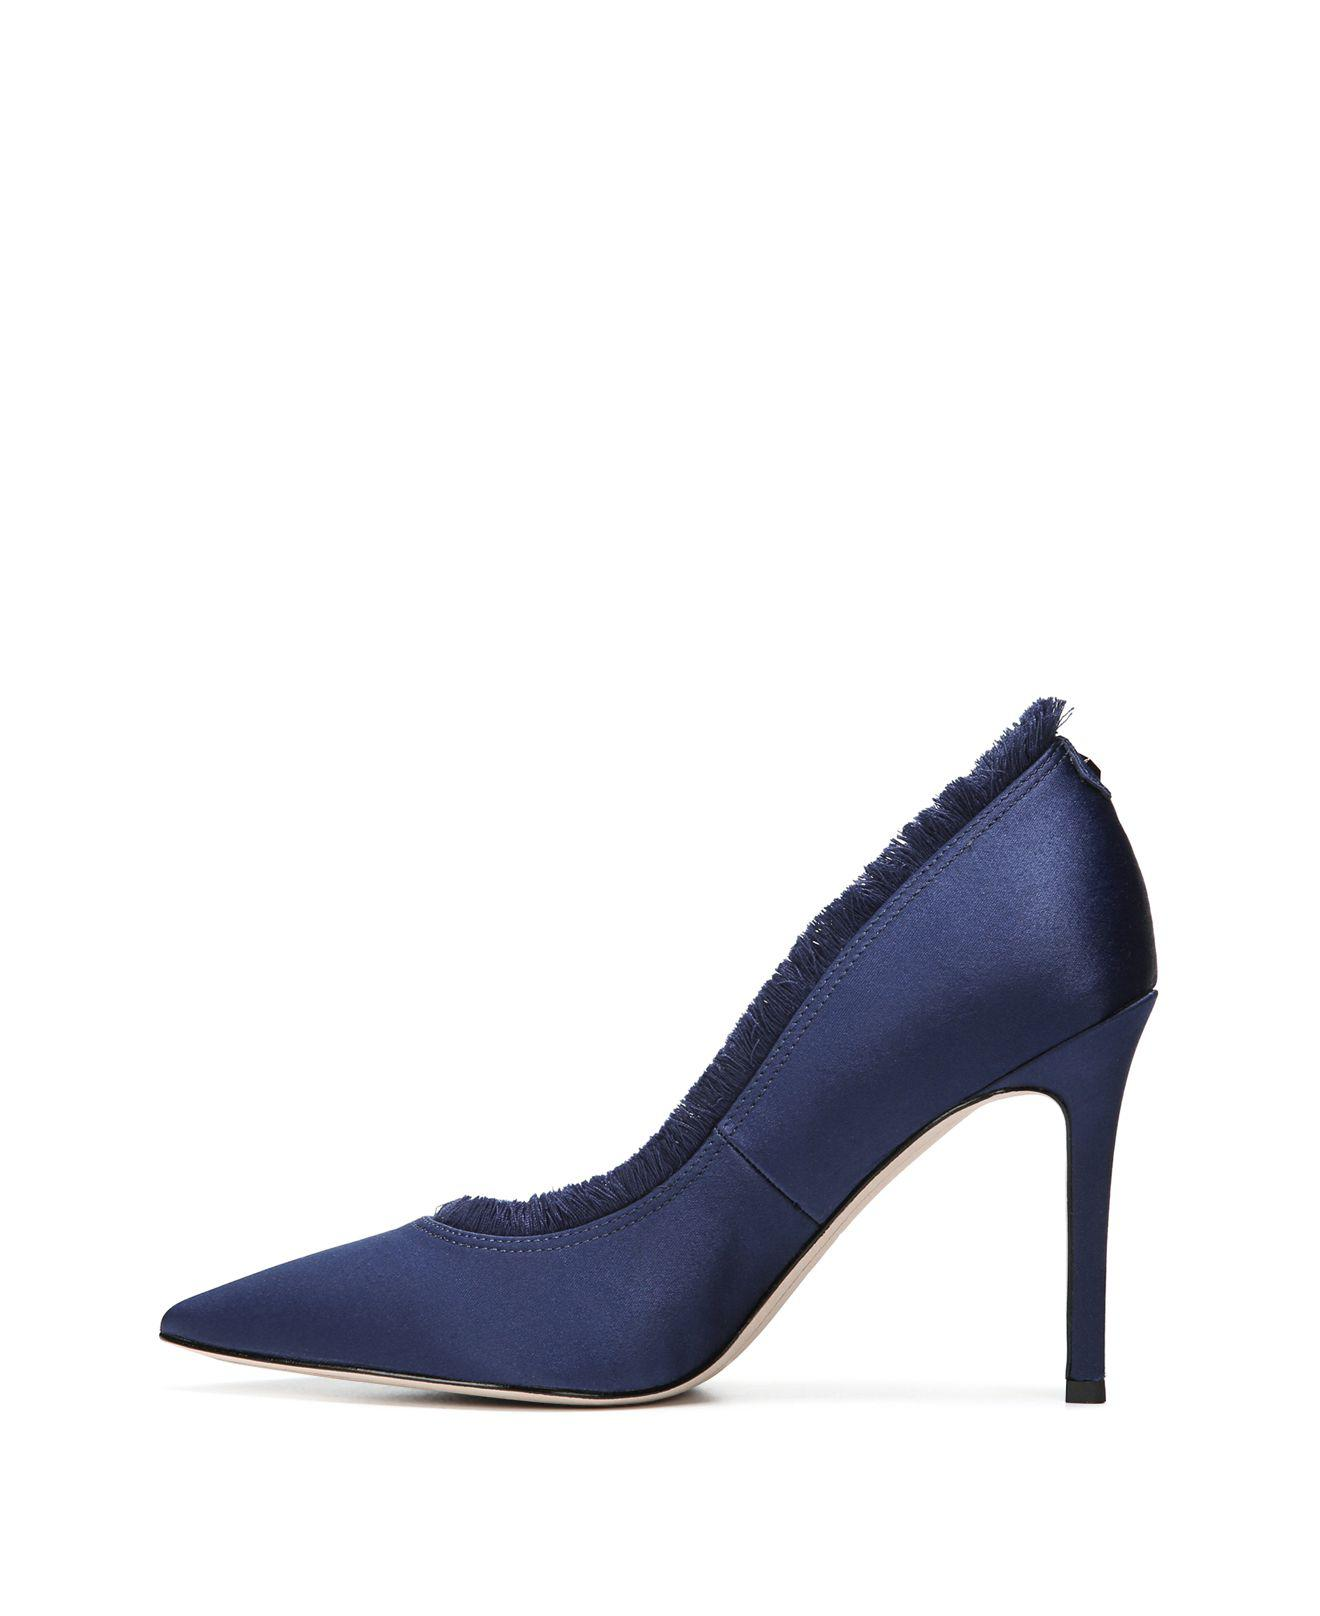 2c72e178f Gallery. Previously sold at  Bloomingdale s · Women s Pointed Toe Pumps ...